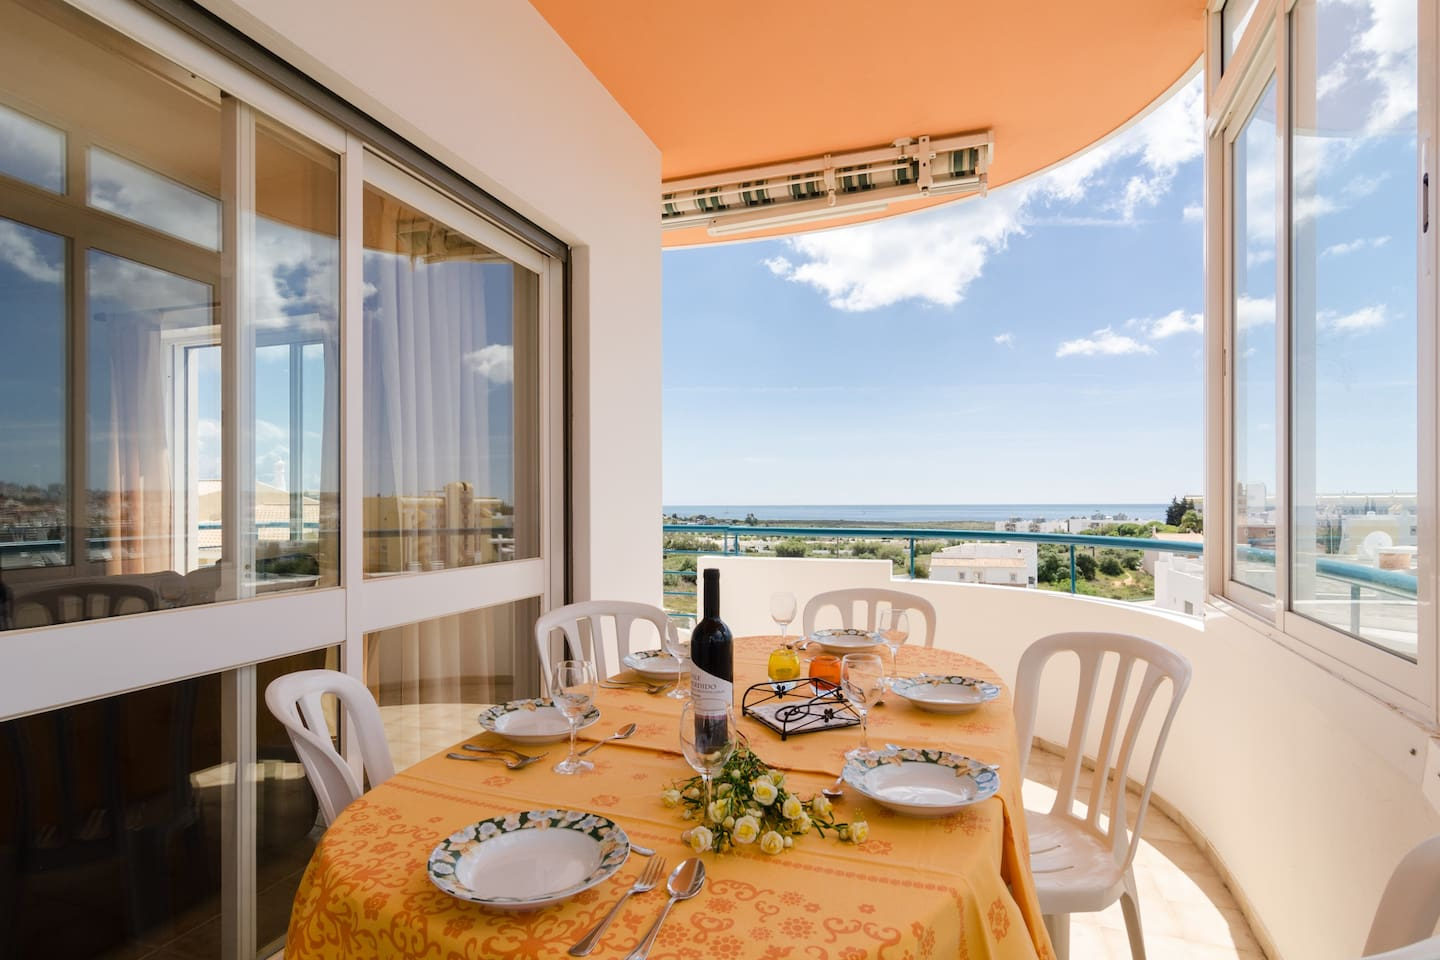 Have lunch or dinner on the balcony, enjoying the fantastic view